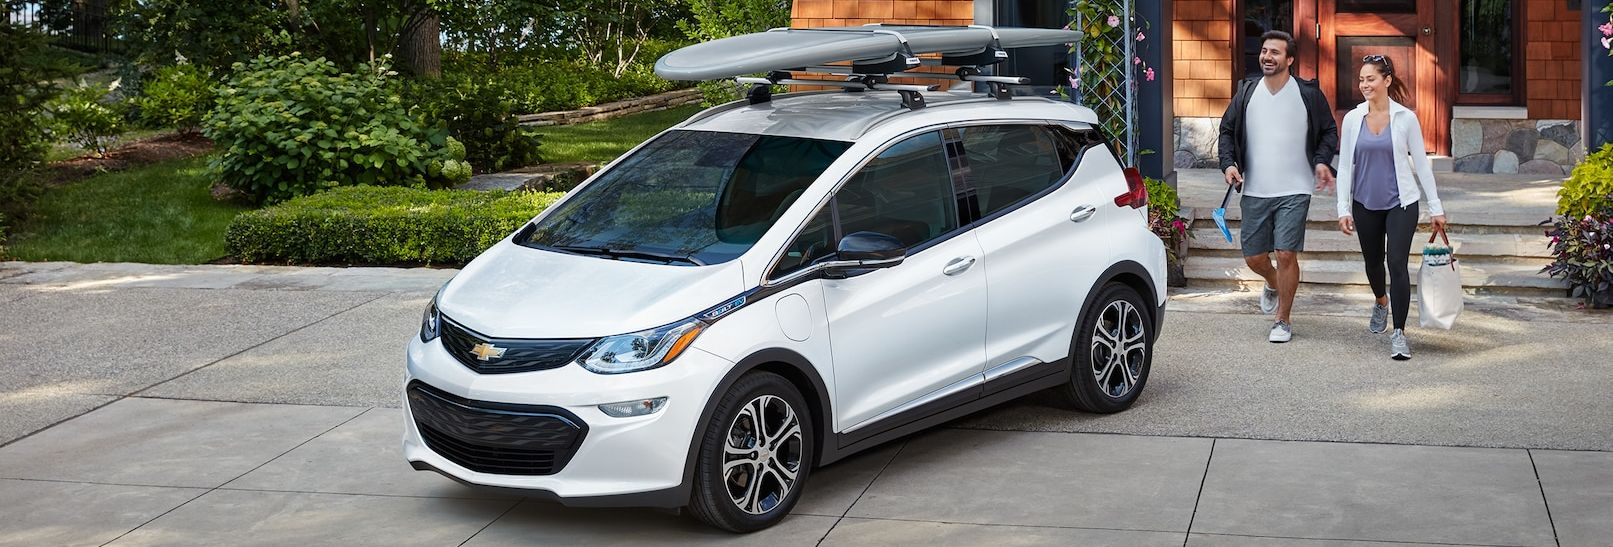 2019 Chevrolet Bolt EV Leasing near Manassas, VA